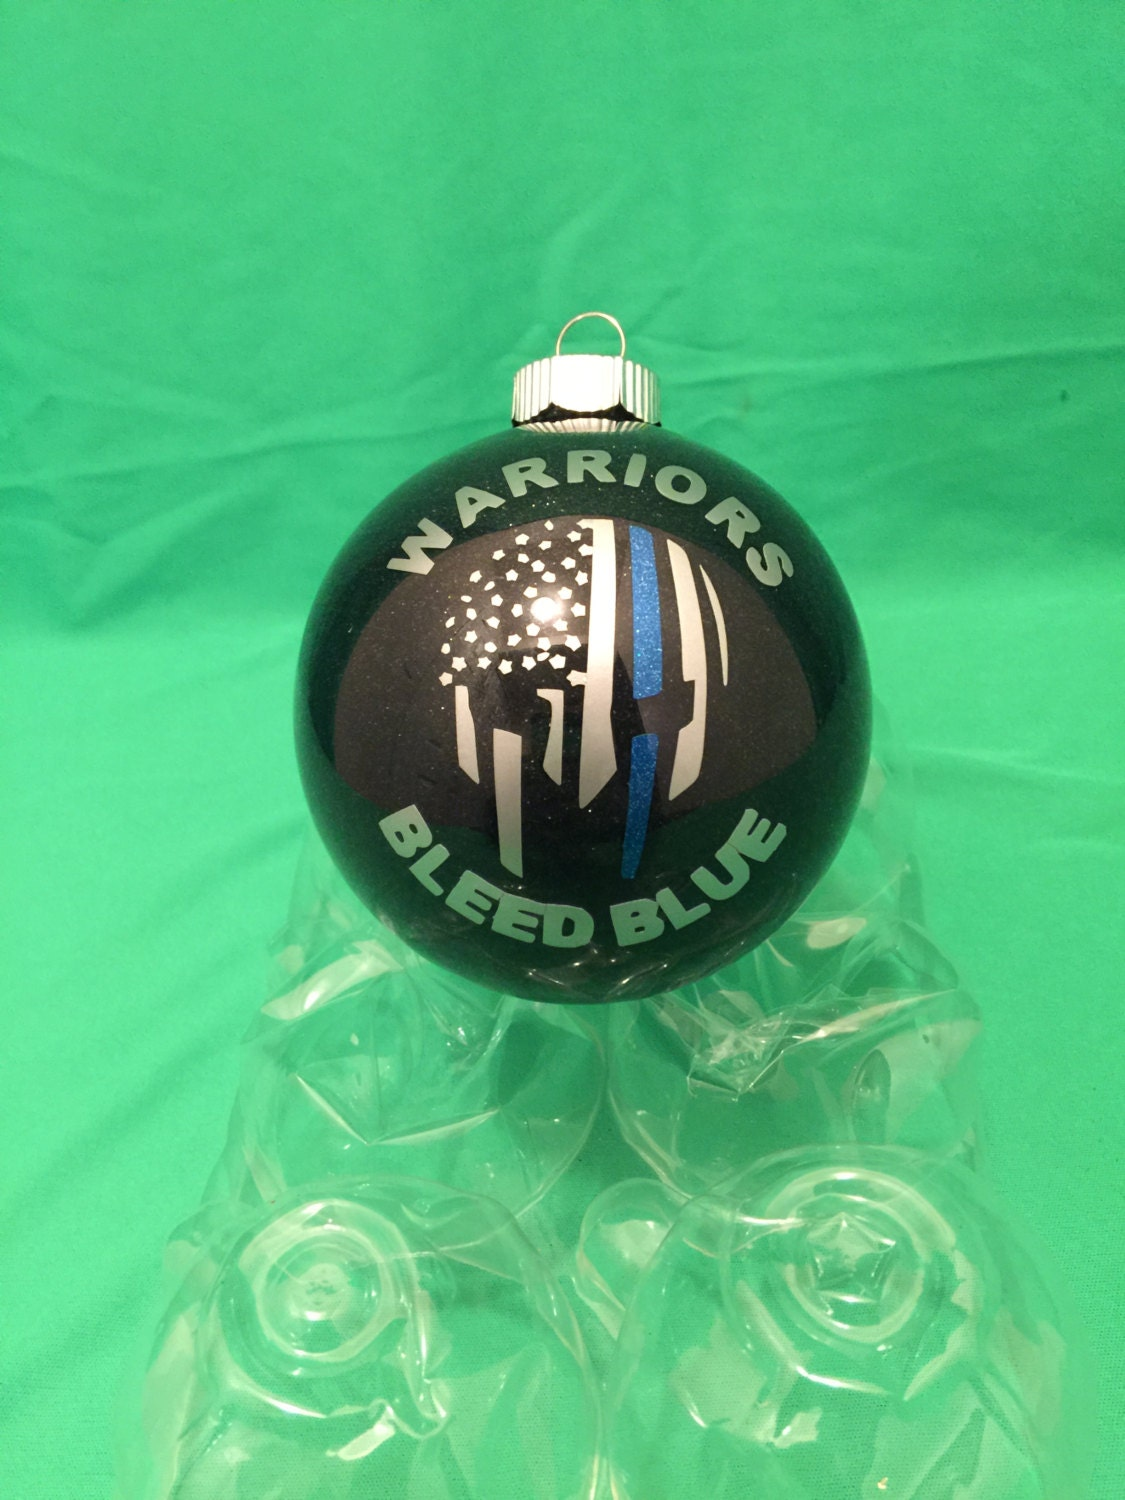 Thin Blue Line Ornament Warriors Bleed Blue Ornament Police